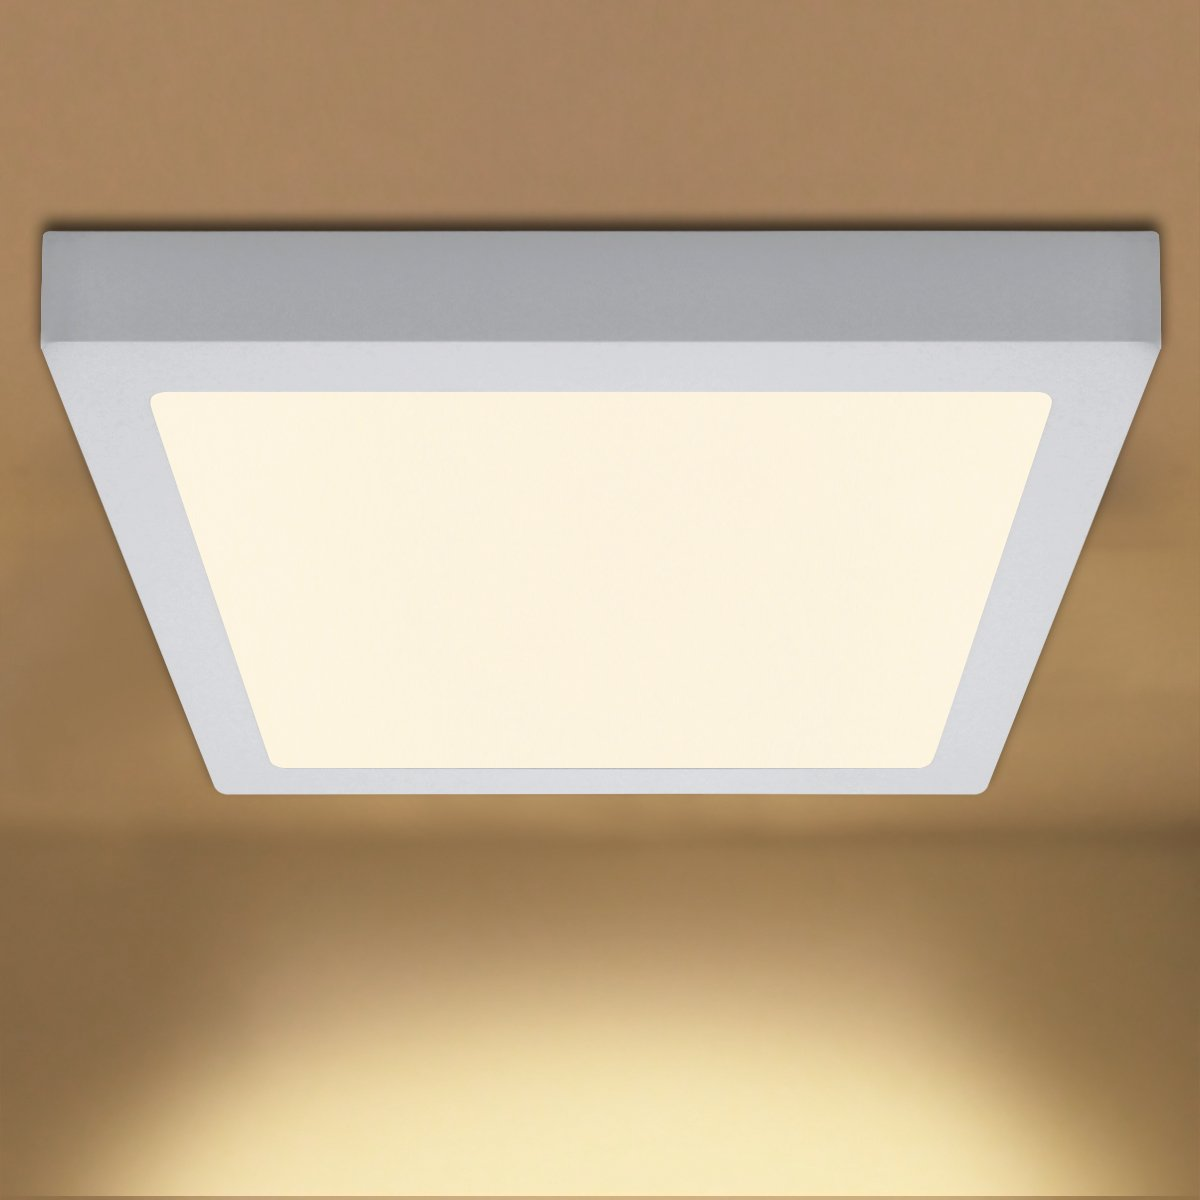 24W Square LED Ceiling Light Flush Mount Panel Soft Warm White 3500k Driver Included [Energy Class A+] Long Life Lamp Company